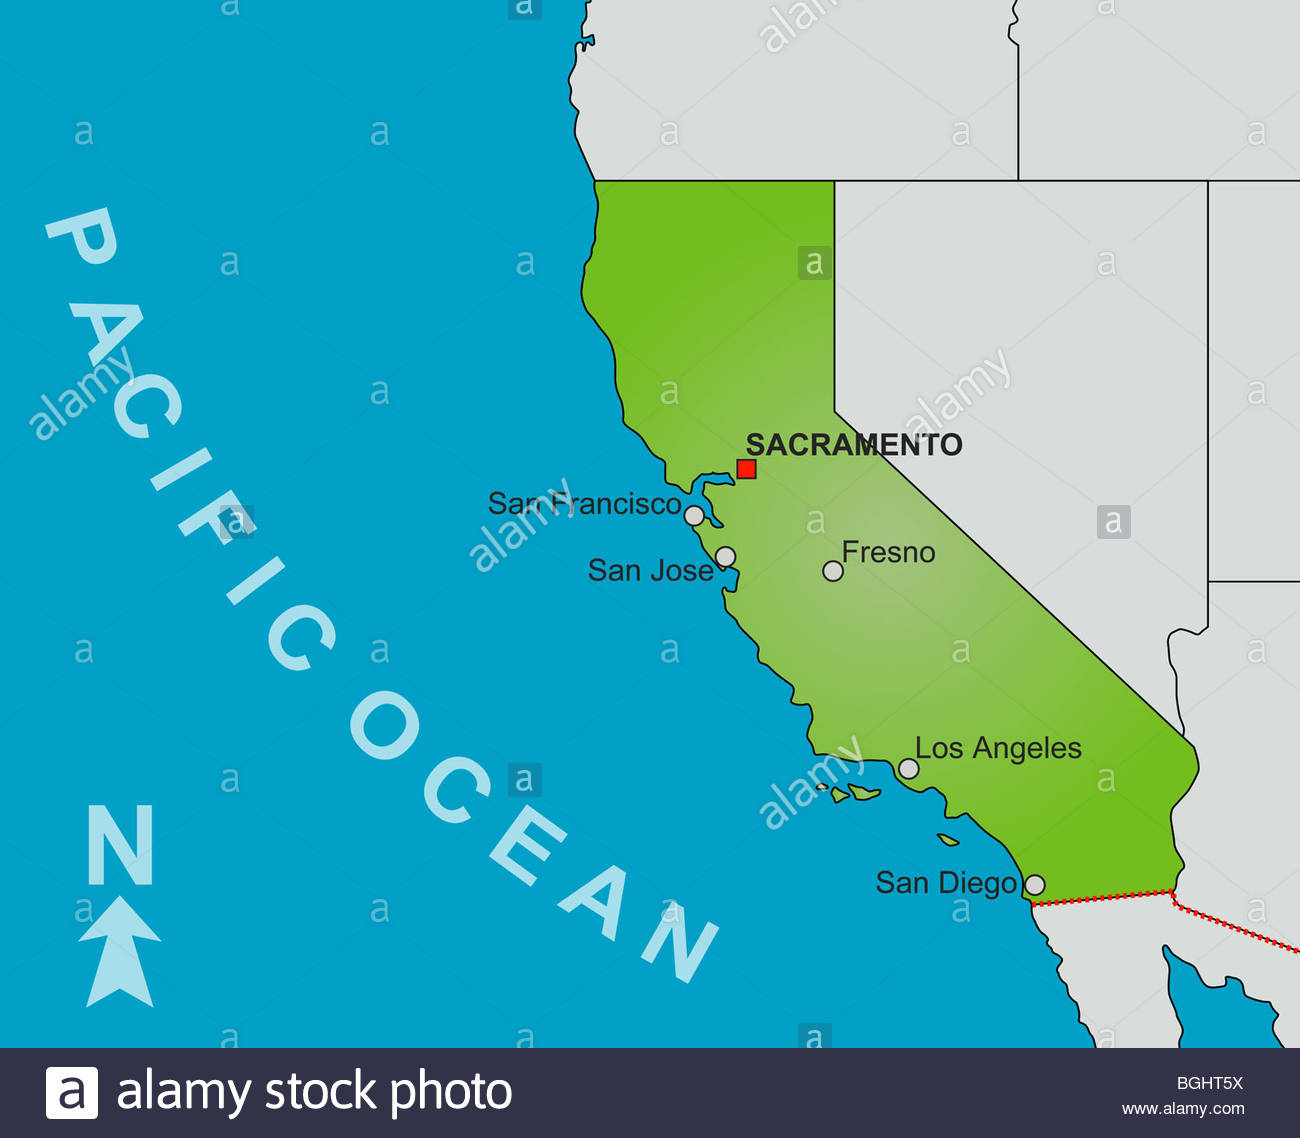 A Stylized Map Of The State Of California Showing Different Big - Big Map Of California